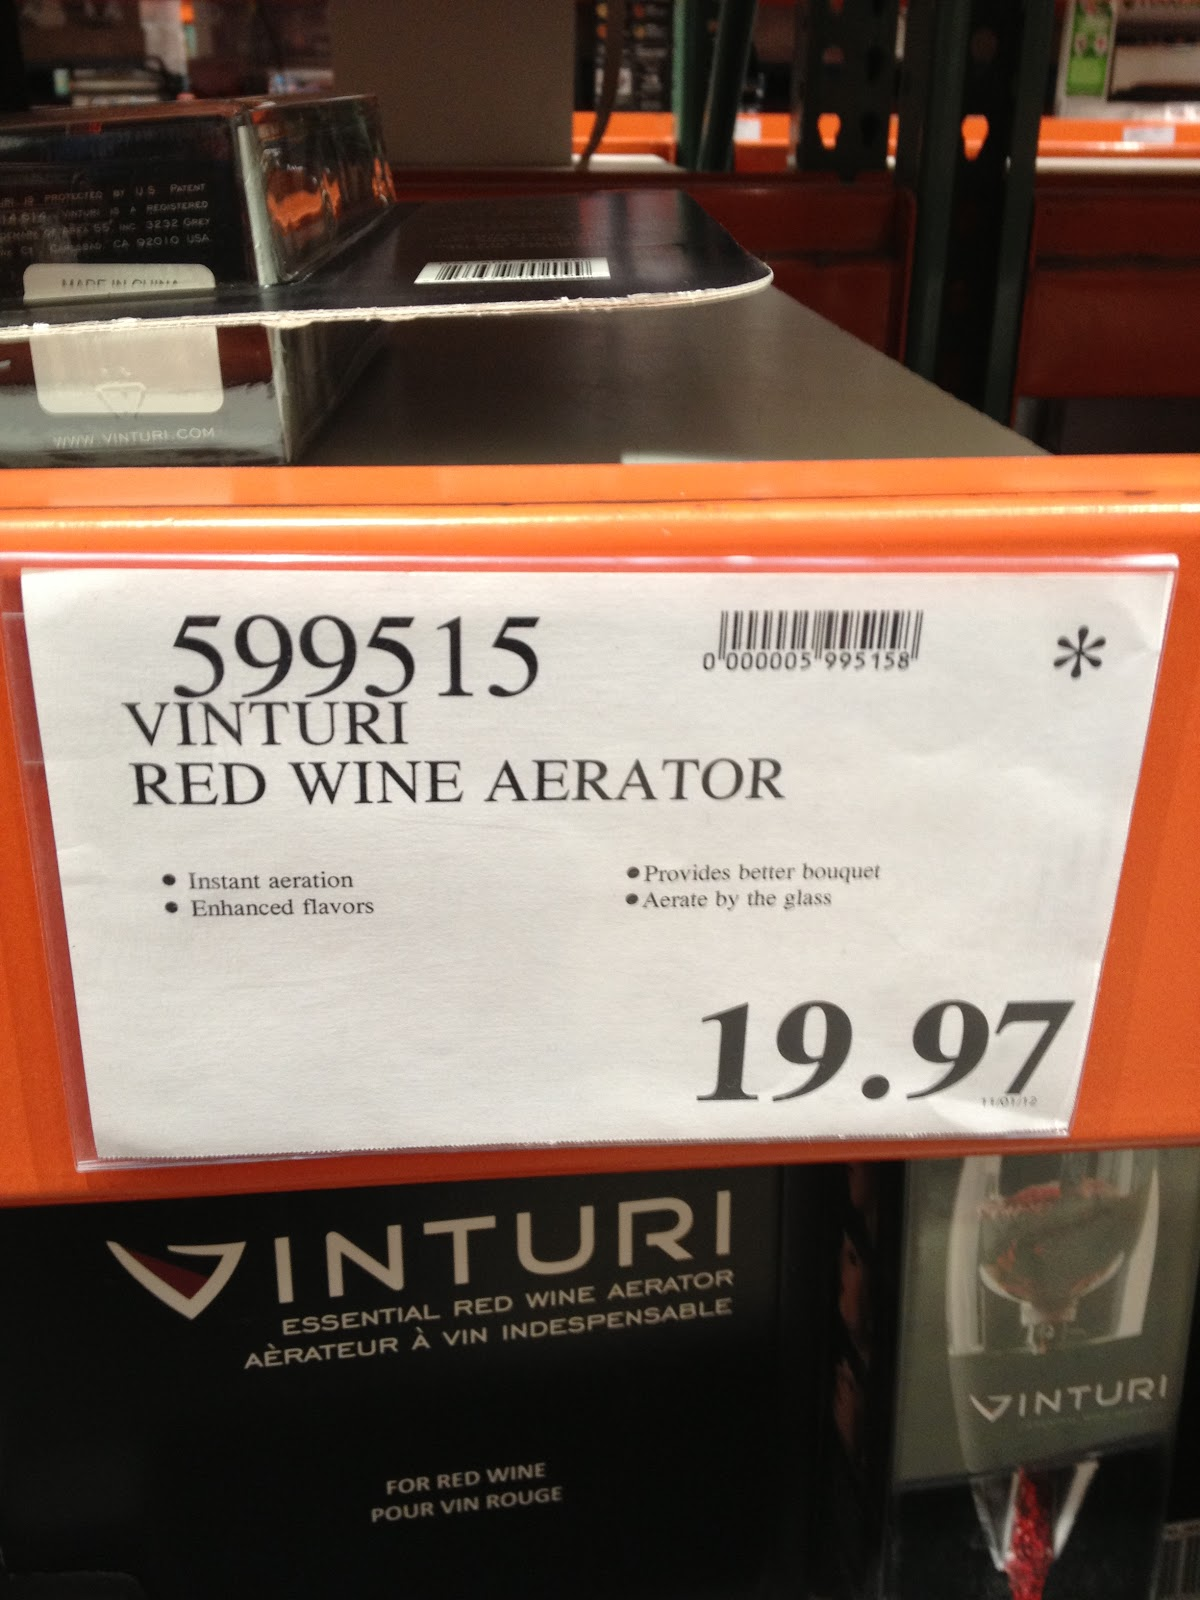 the wellesley wine press costco value alert s the price ending in 7 at costco is our cue that it s a closeout so buy now if you want one at this price